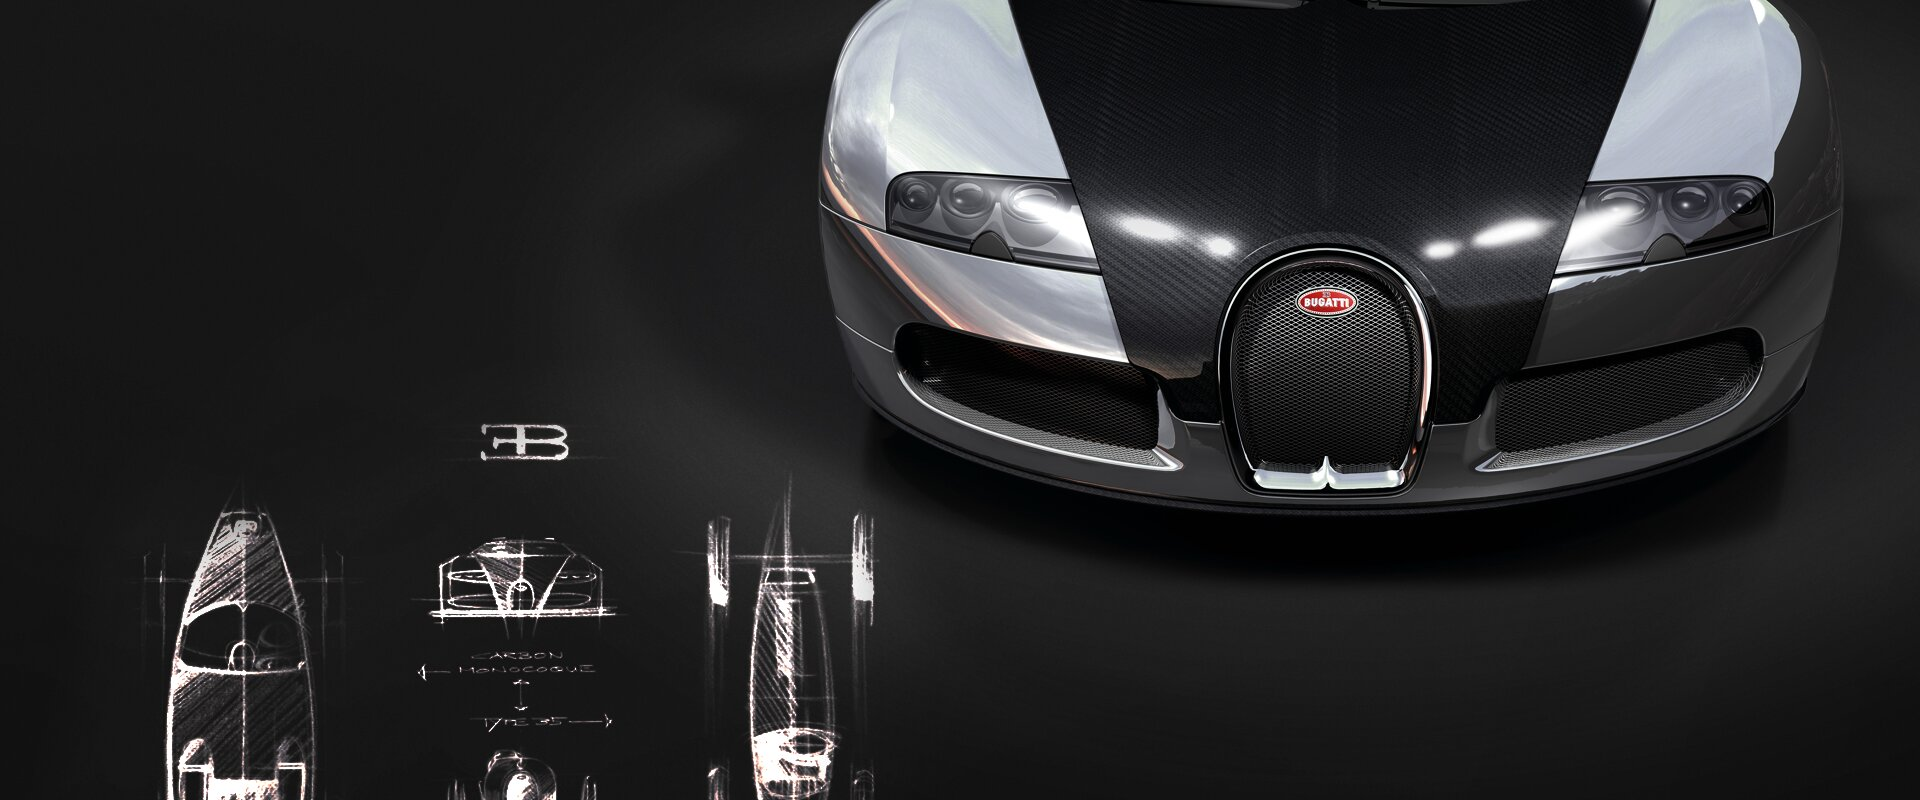 15 years of the Bugatti Veyron 16.4